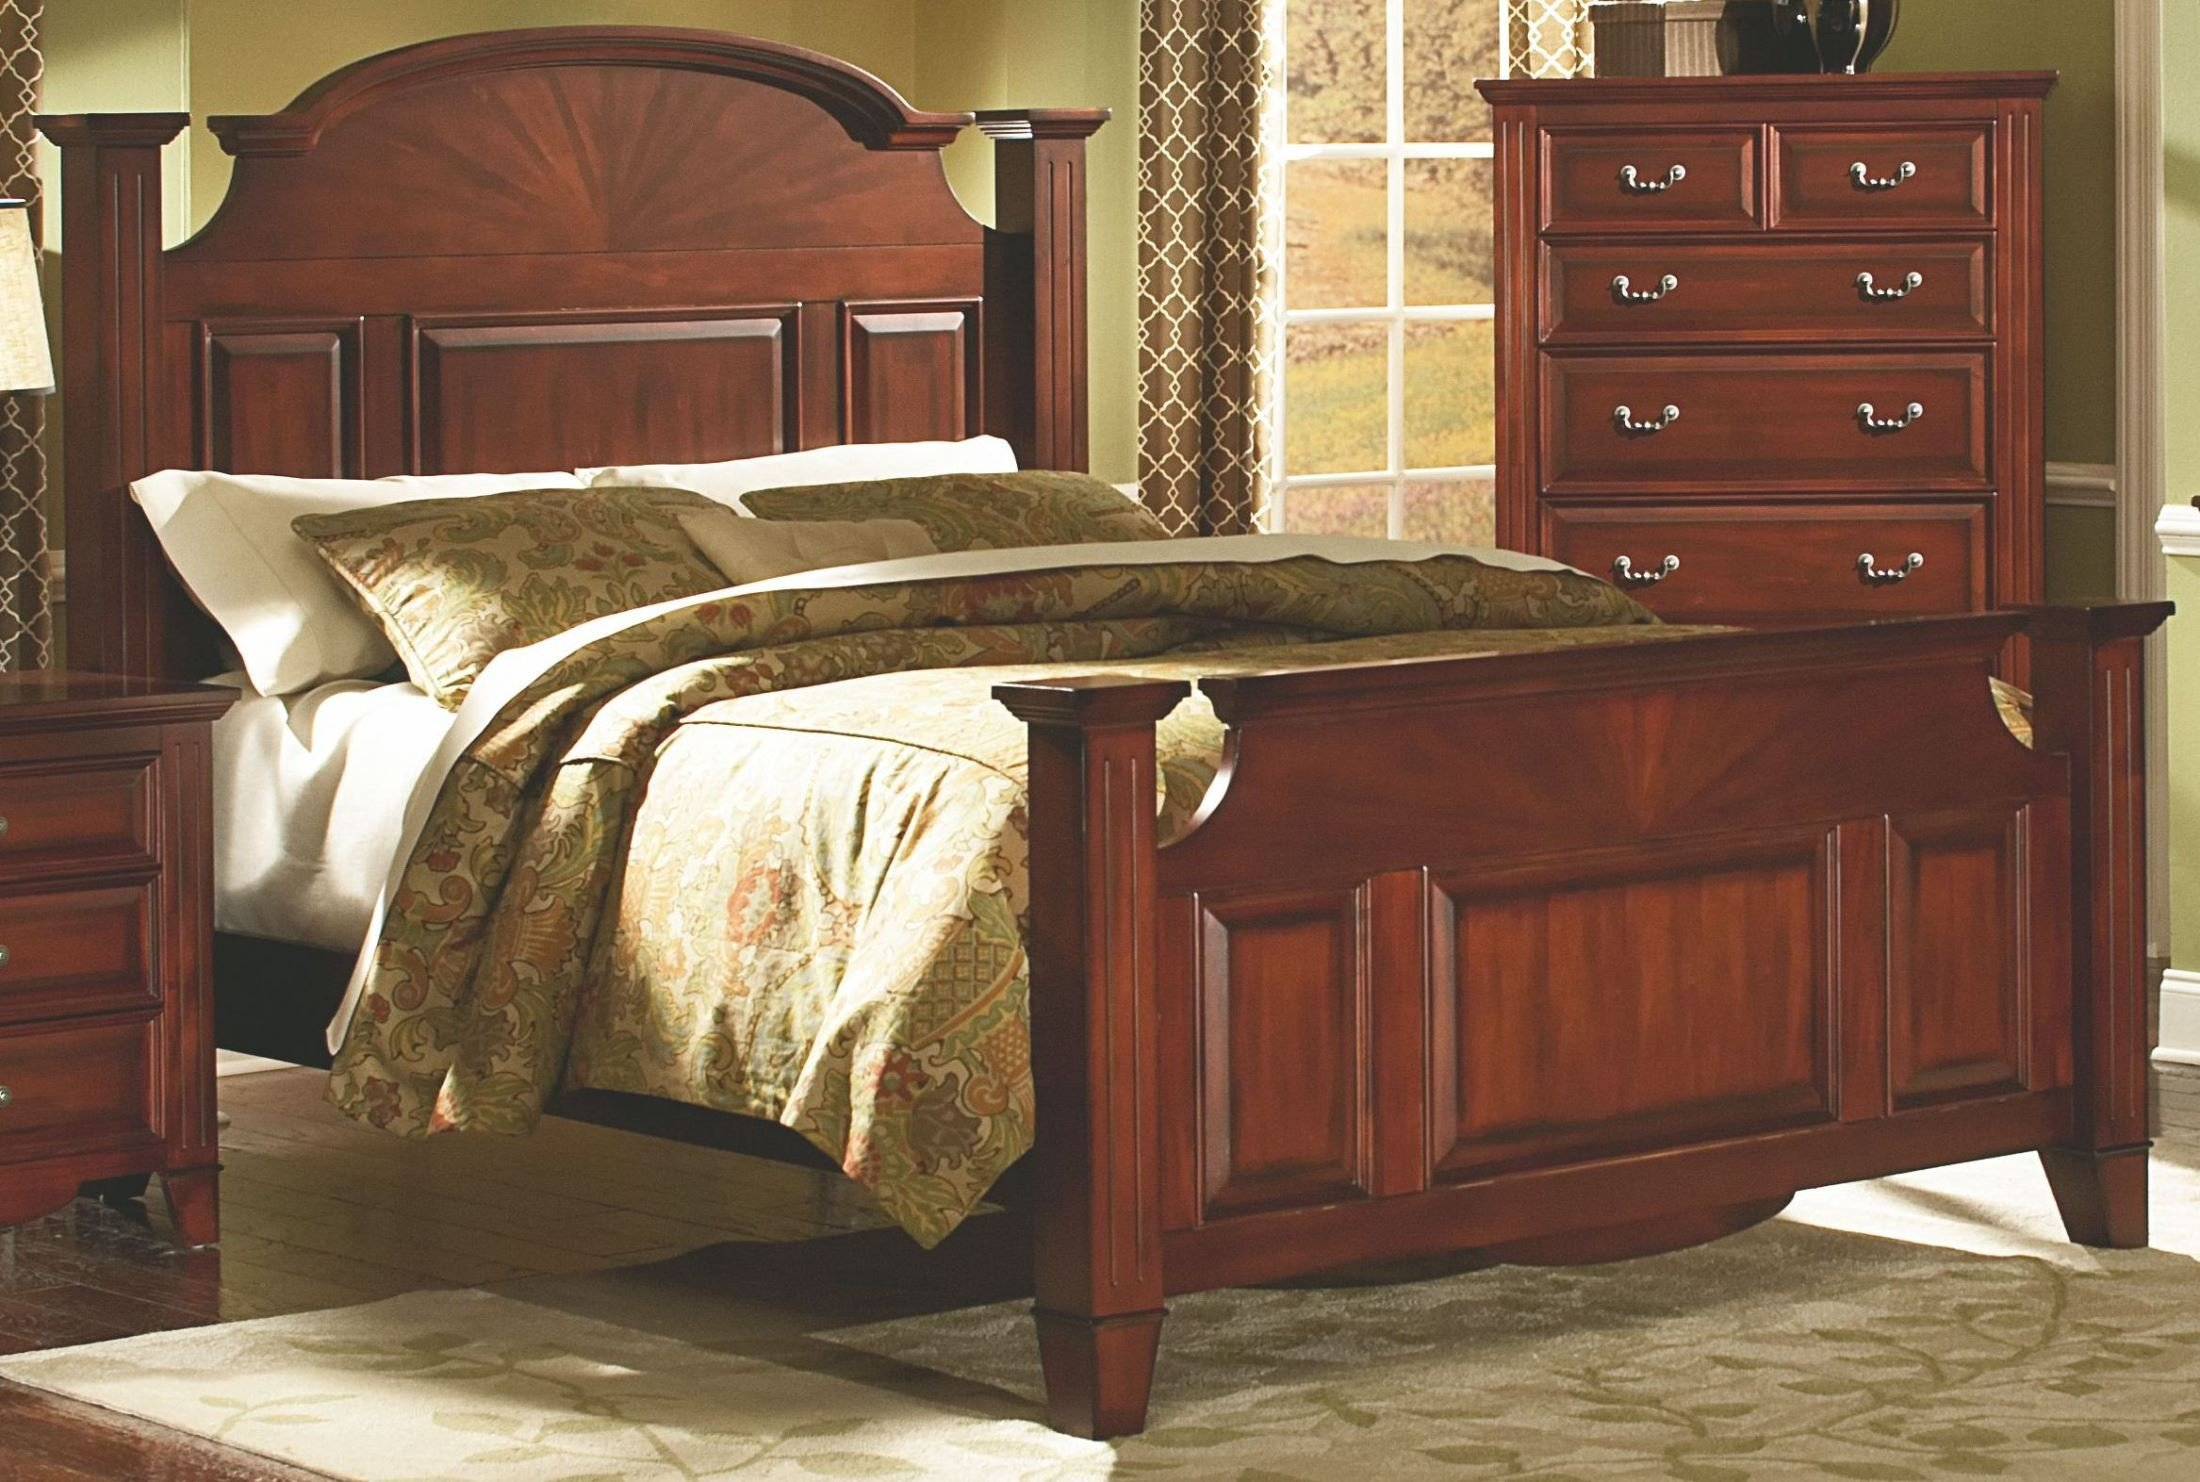 Merveilleux ... Drayton Hall Bordeaux Panel Bedroom Set Media Gallery 1 ...